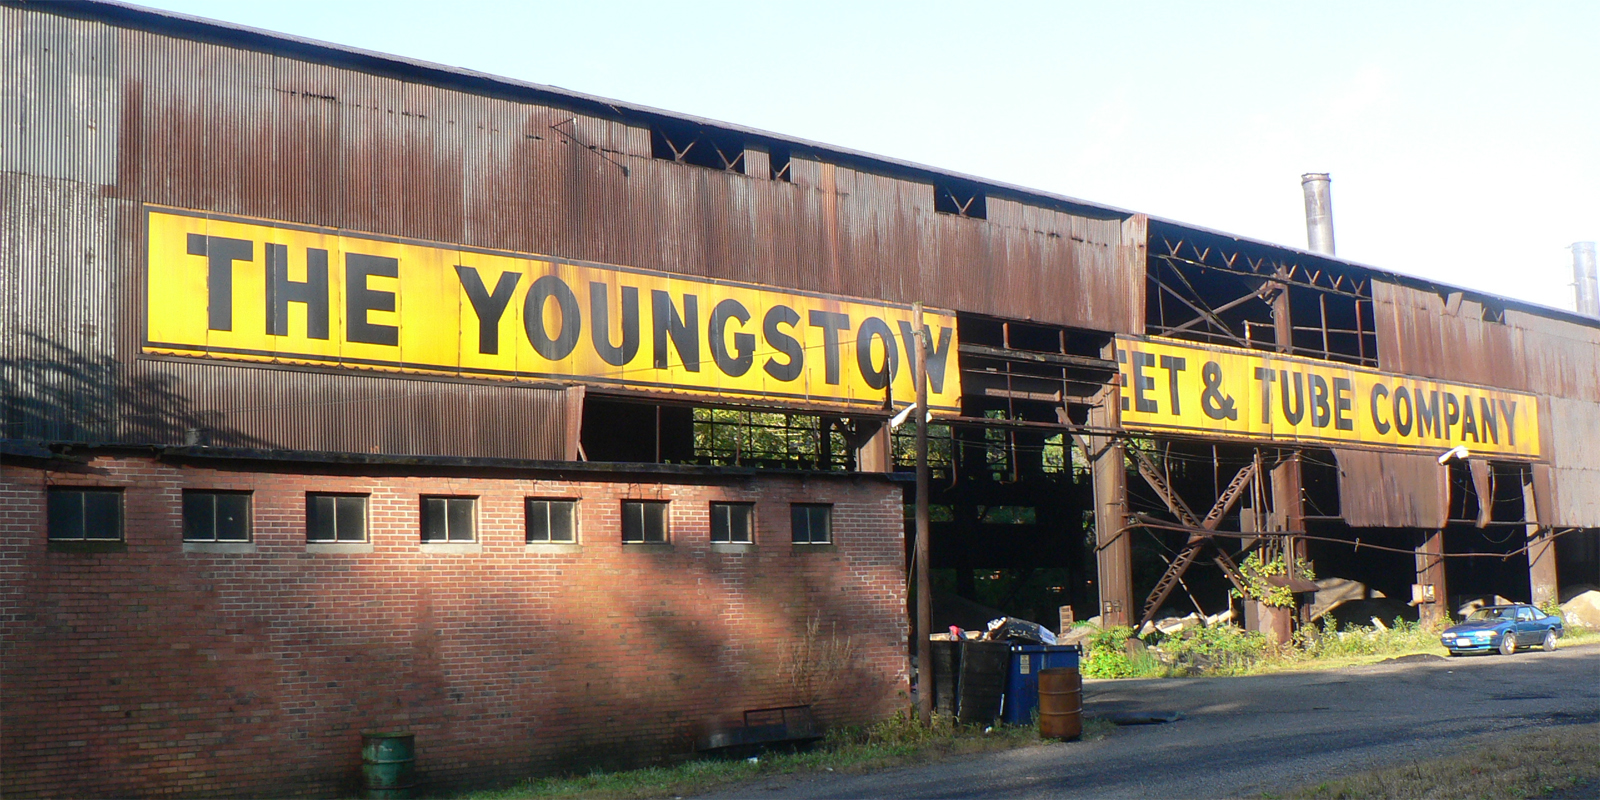 Abandoned Youngstown factory, via Flickr user stu_spivack.